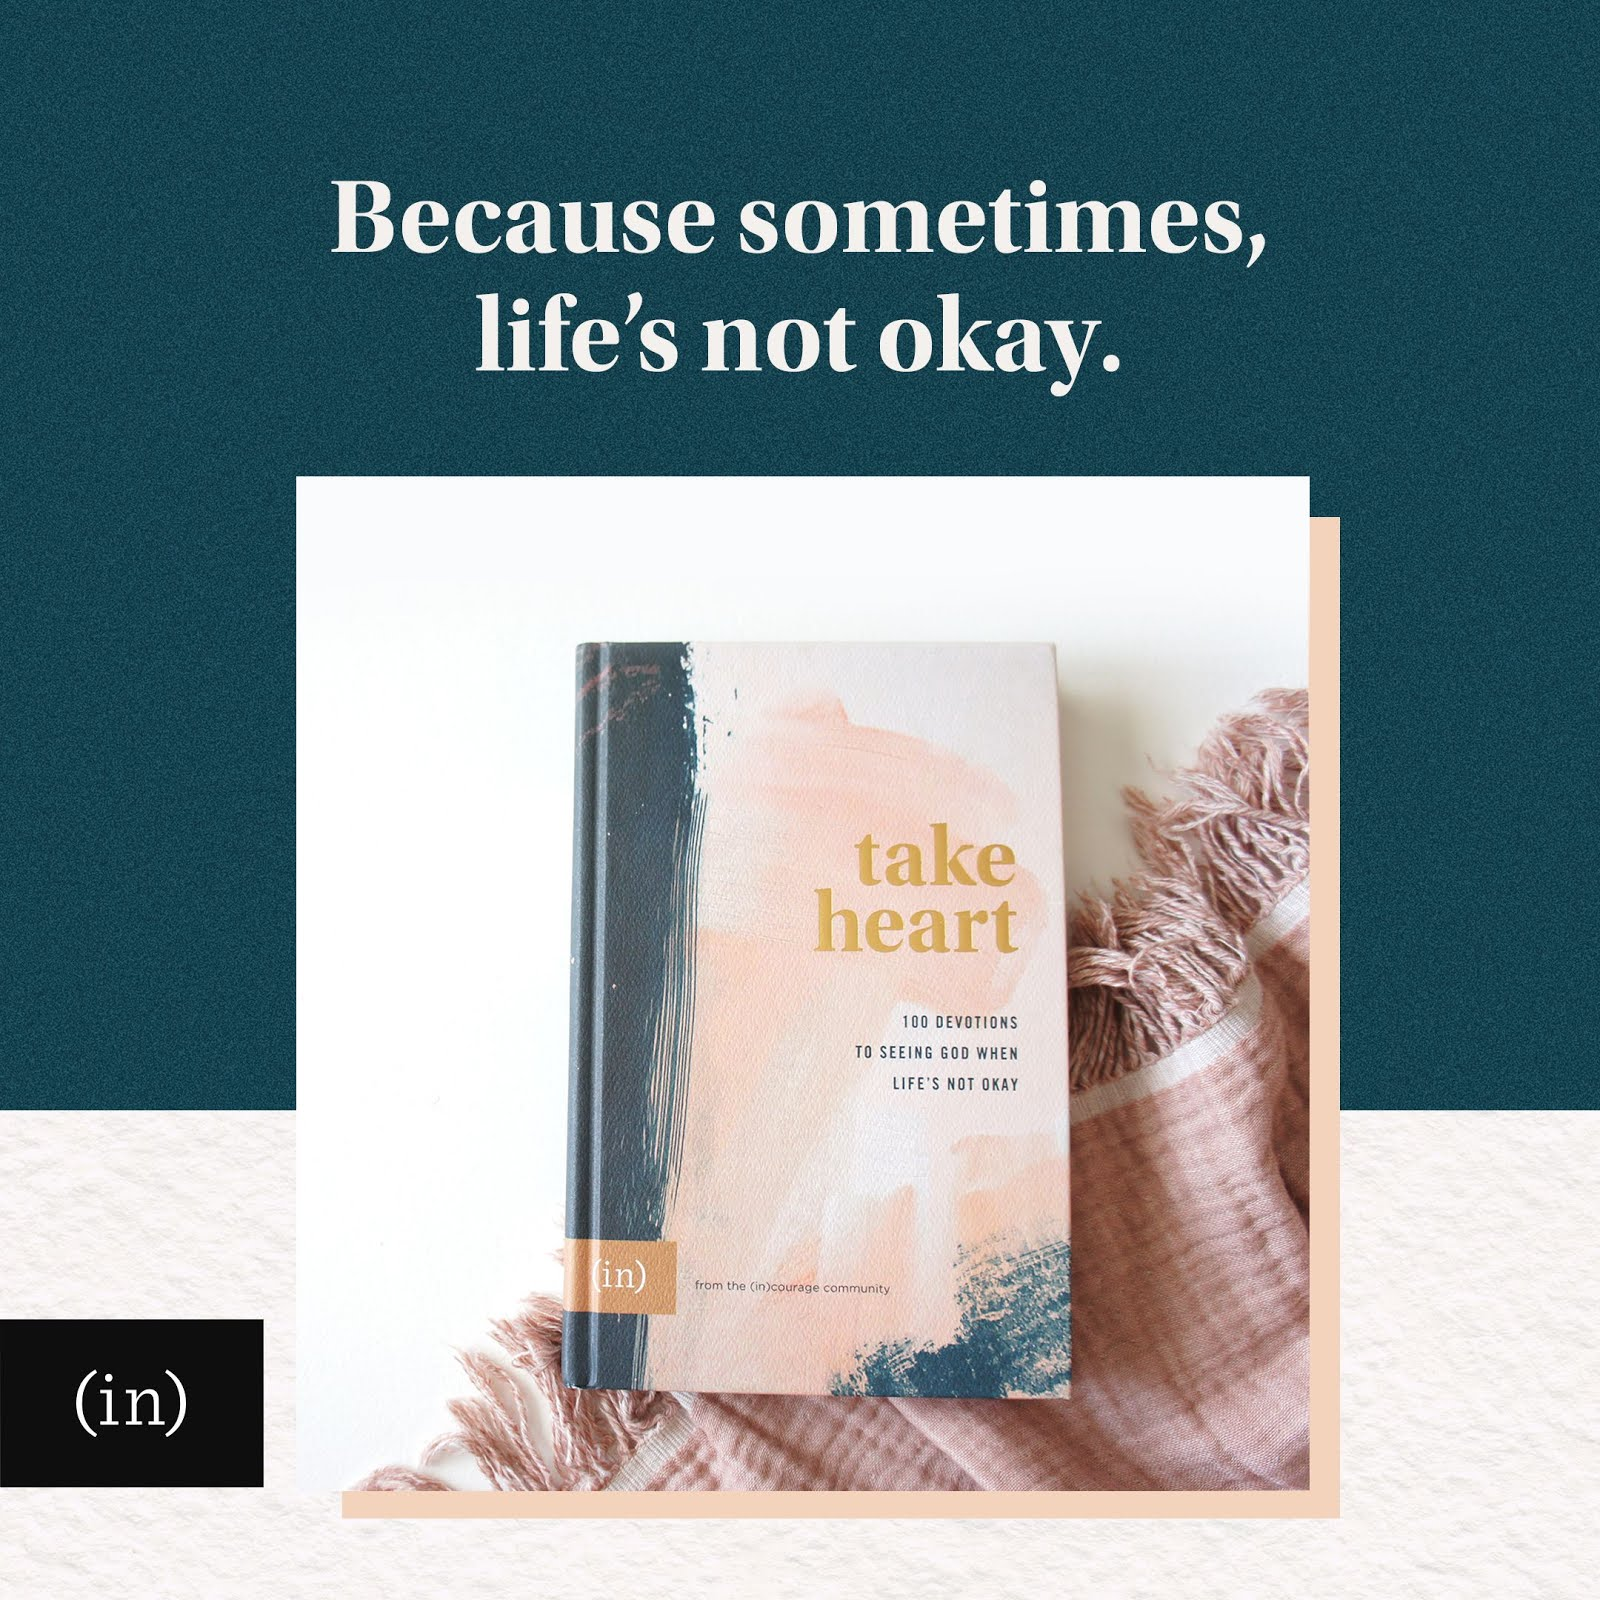 Take Heart: 100 devotions to seeing God when life's not okay